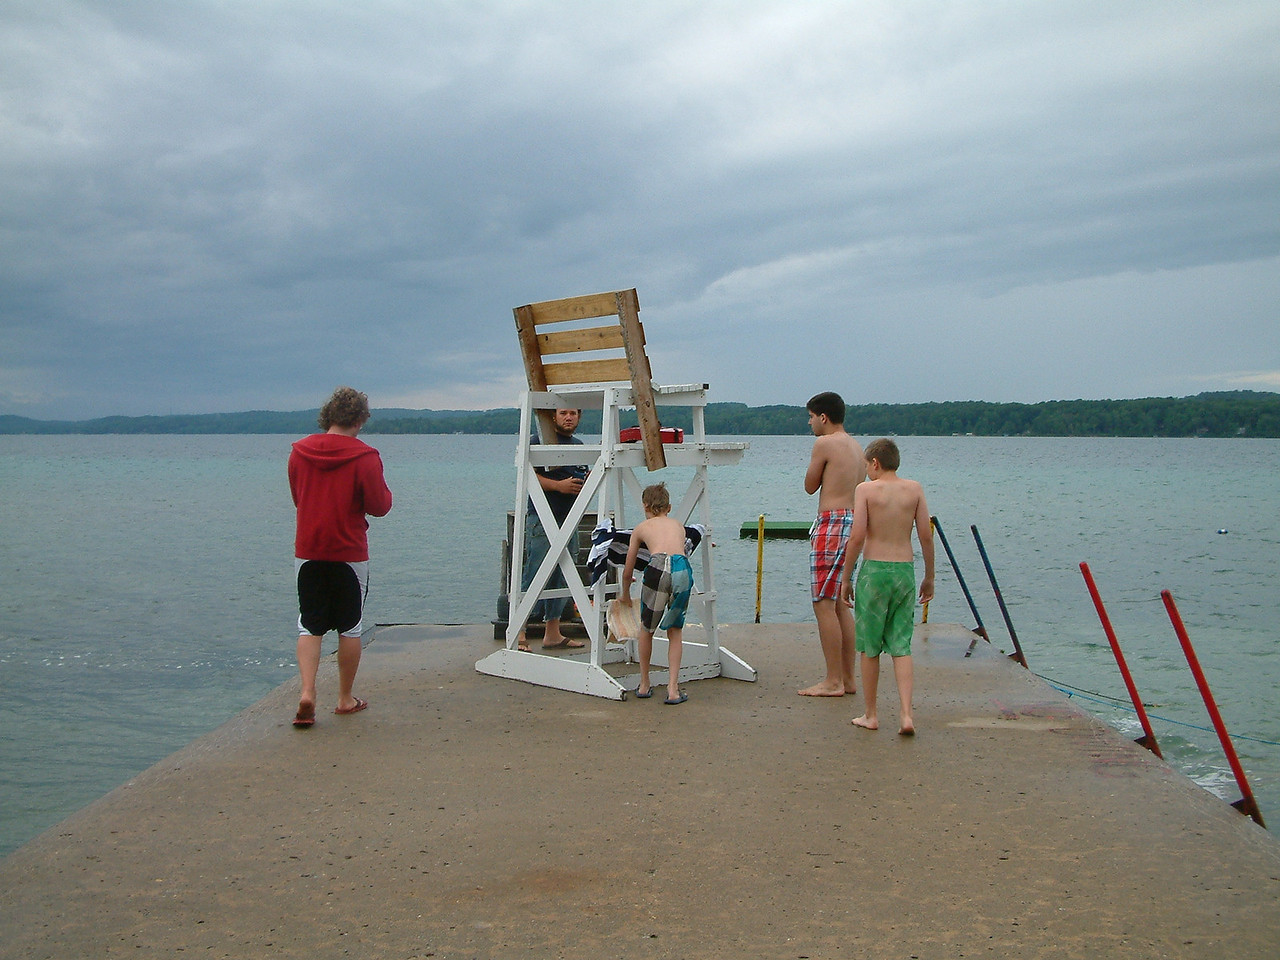 Eager Polar Bearers! The morning tradition of jumping in Torch Lake as an early morning wake up!